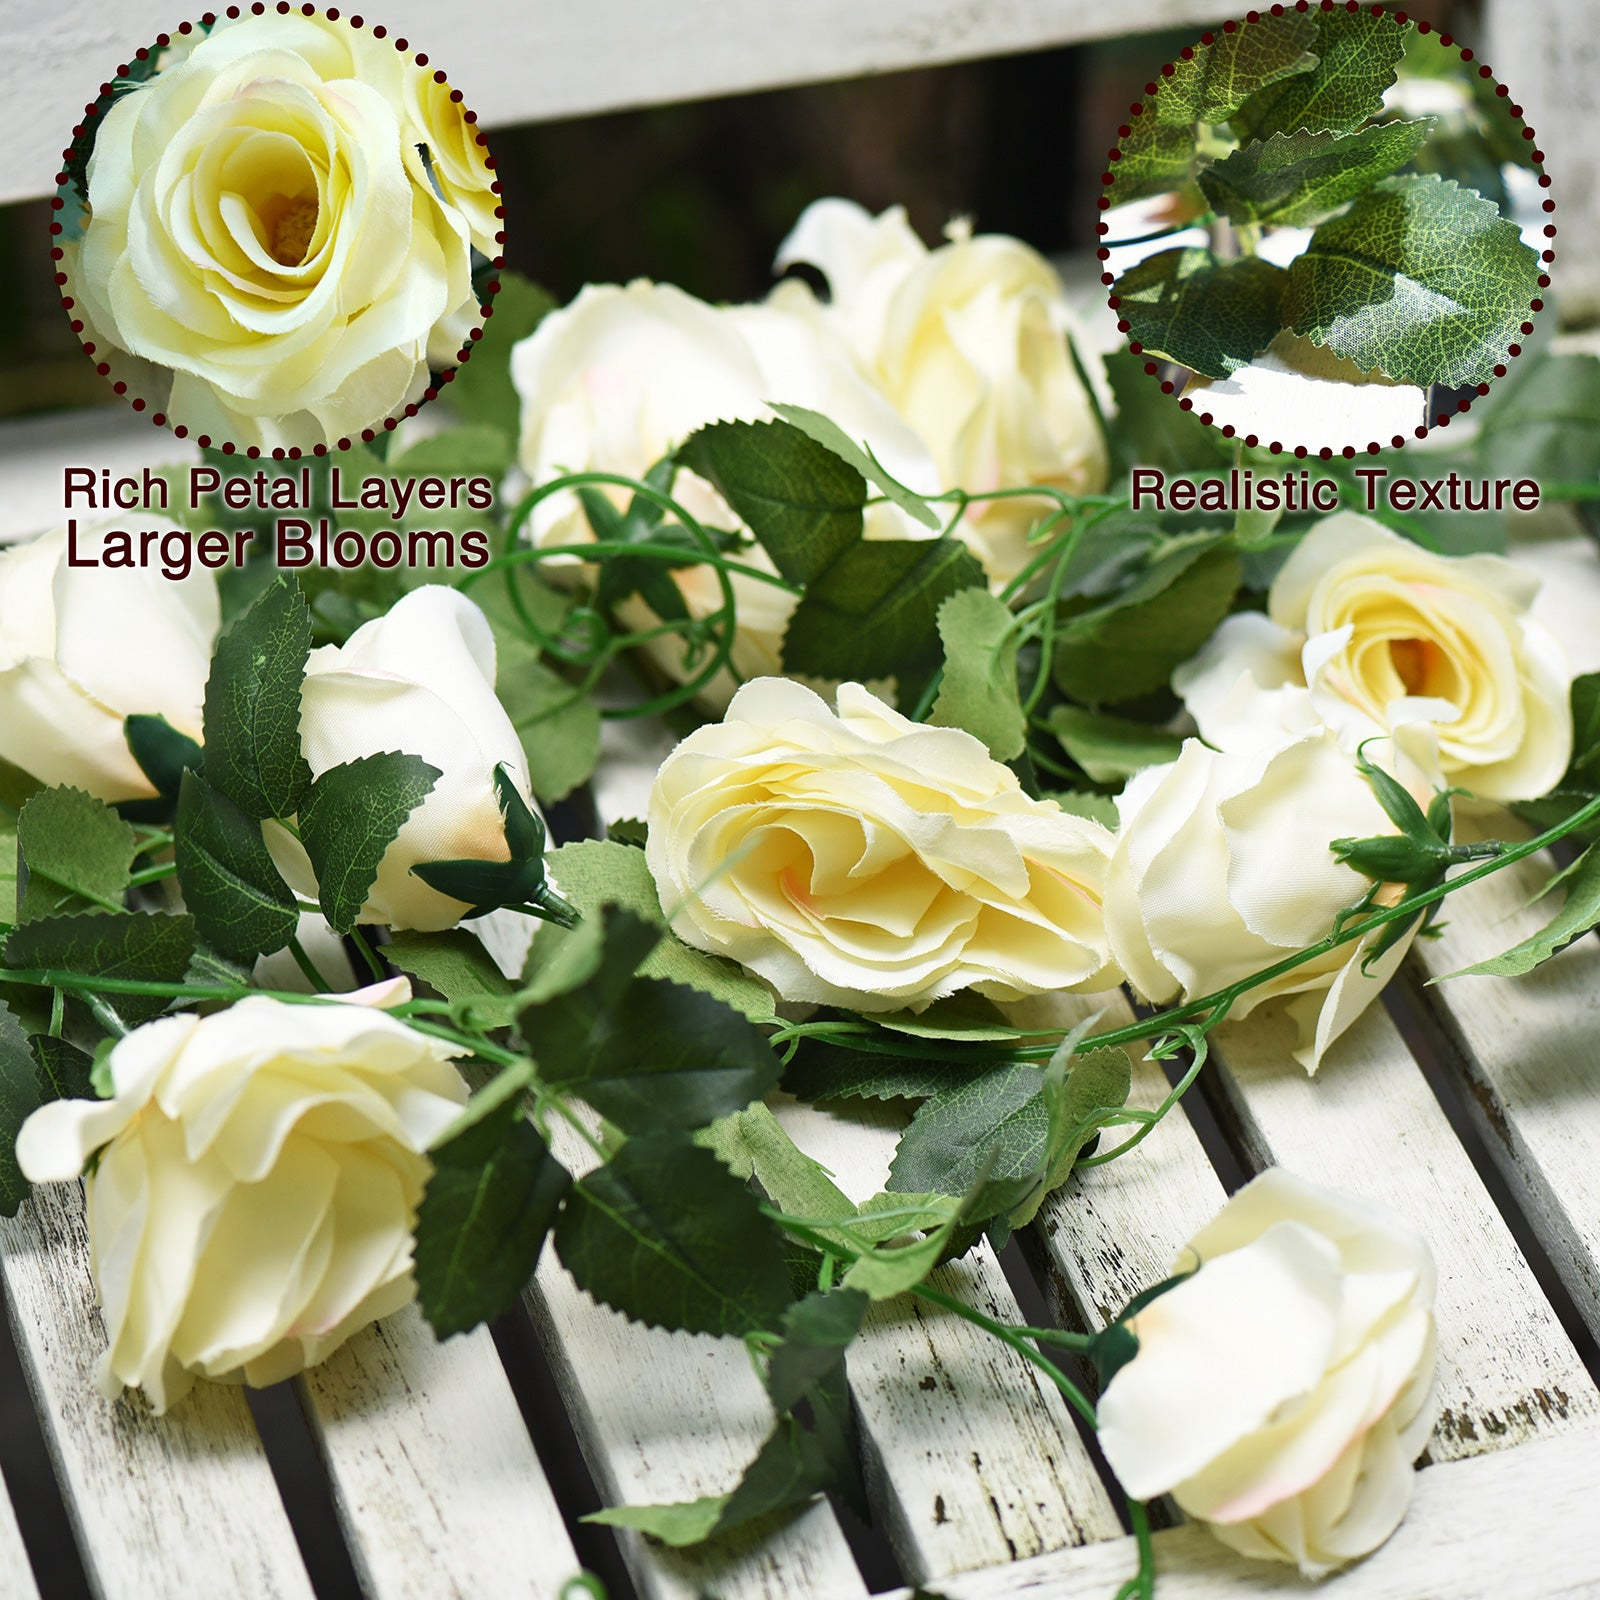 Artificial Silk Rose Garlands Vine Plant Flower Leaves (Cream White) 2 Pcs